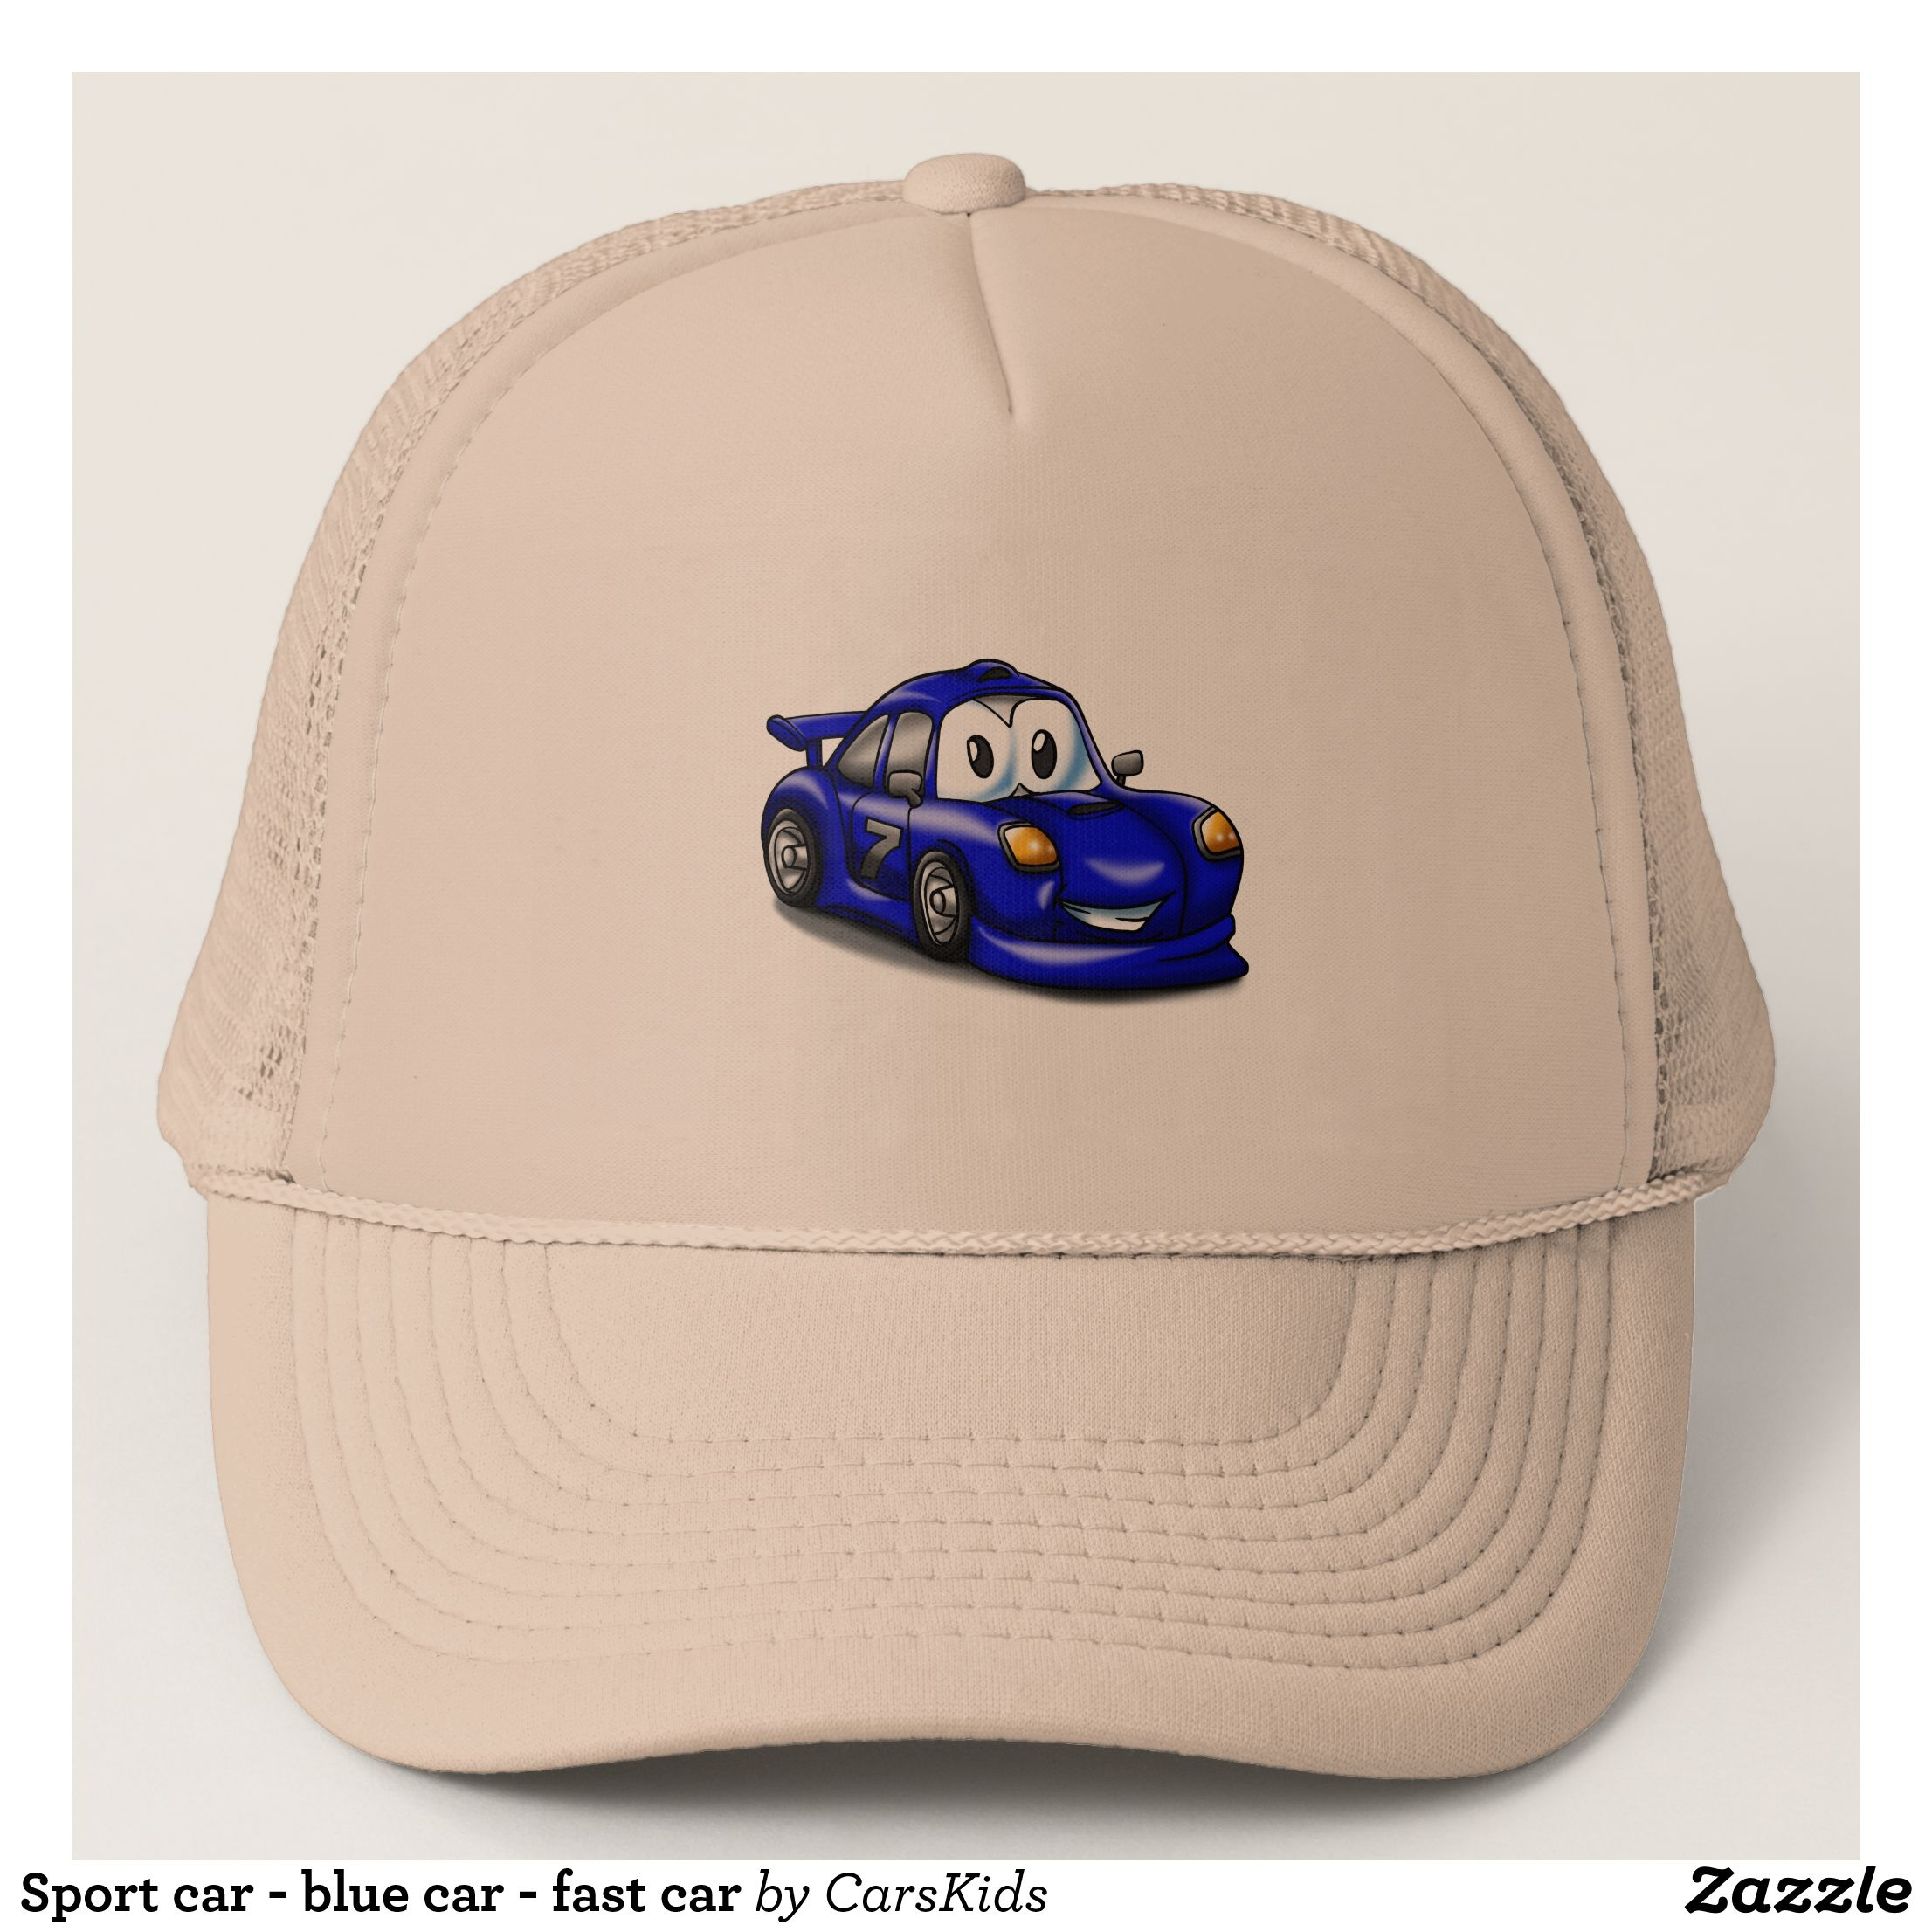 Pin On Trucker Hats Urban Hunter Fisher Farmer Redneck Hats By Talented Fashion And Graphic Designers